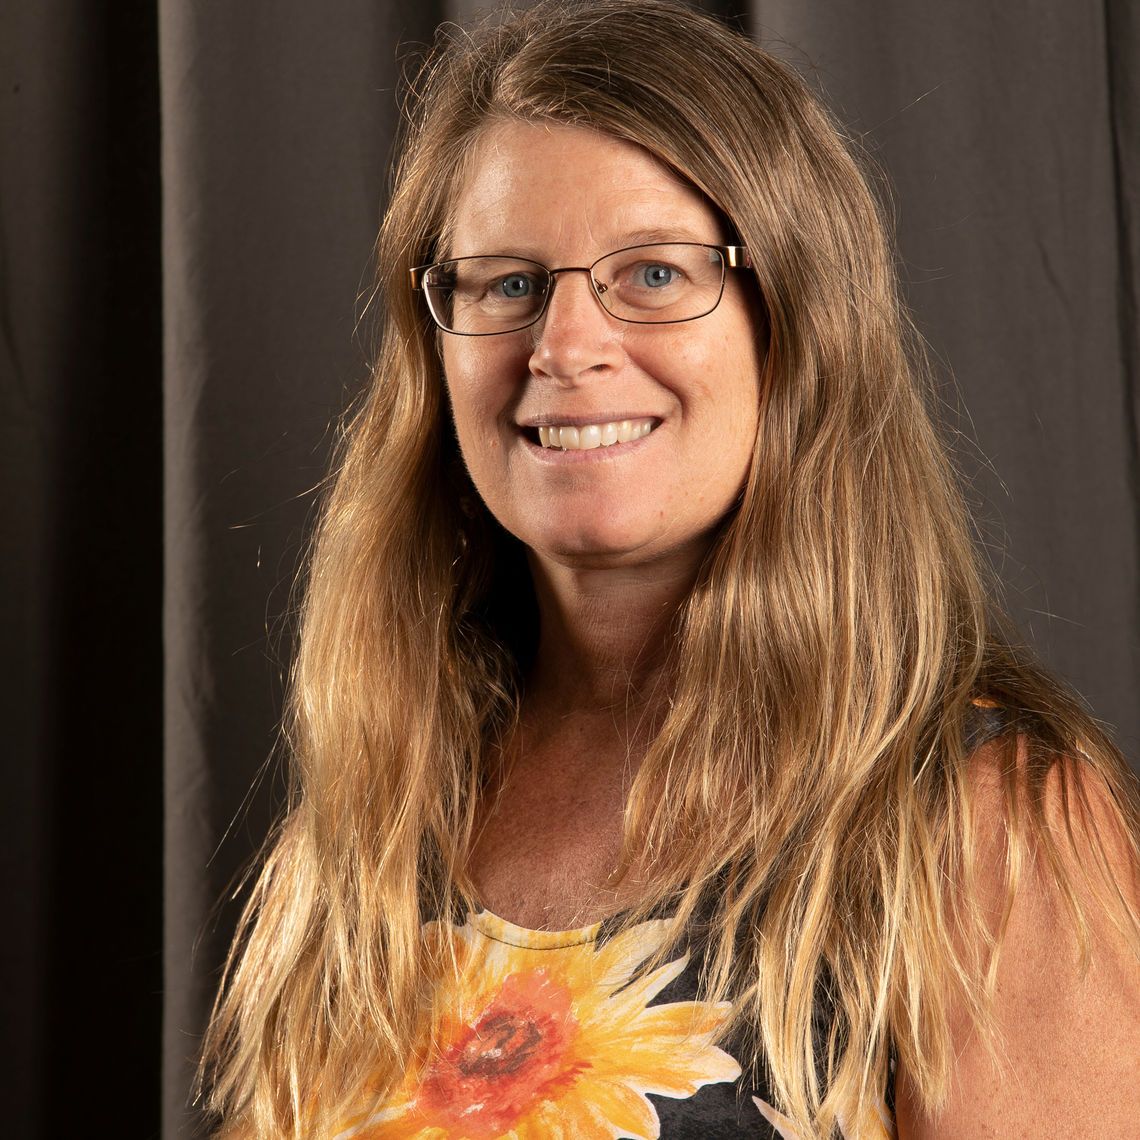 Melissa Betrone, the new academic coordinator for the Earth & Environment Department.